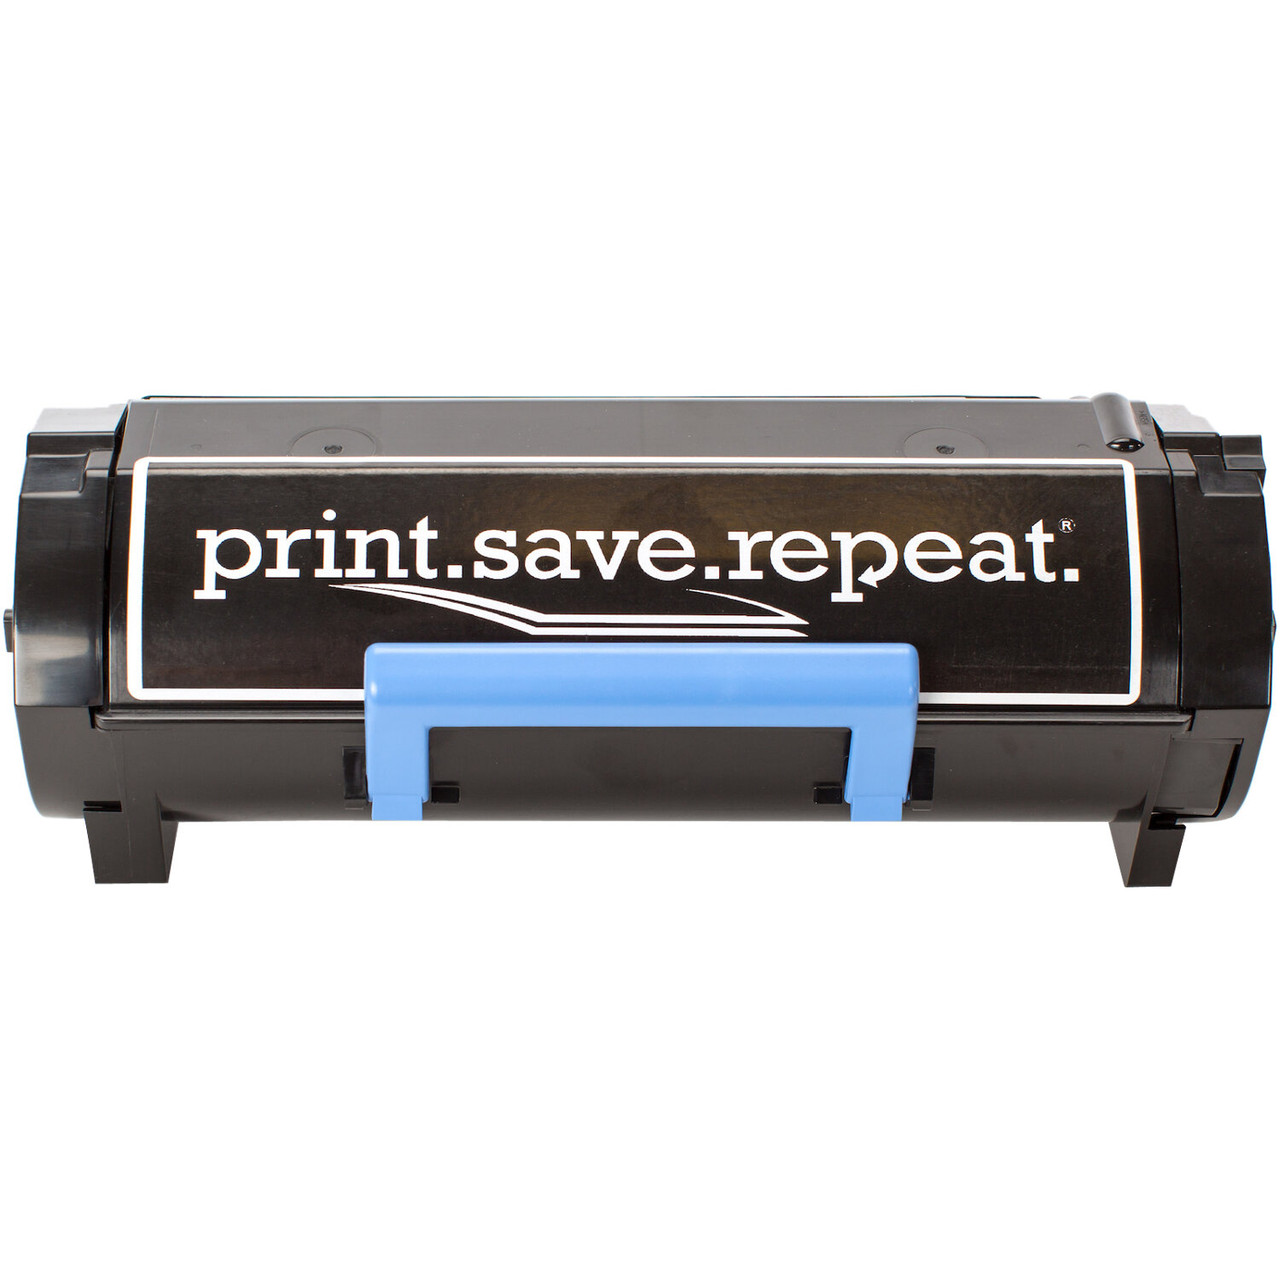 Print.Save.Repeat 8,500 Pages Dell GGCTW High Yield Remanufactured Toner Cartridge for S2830